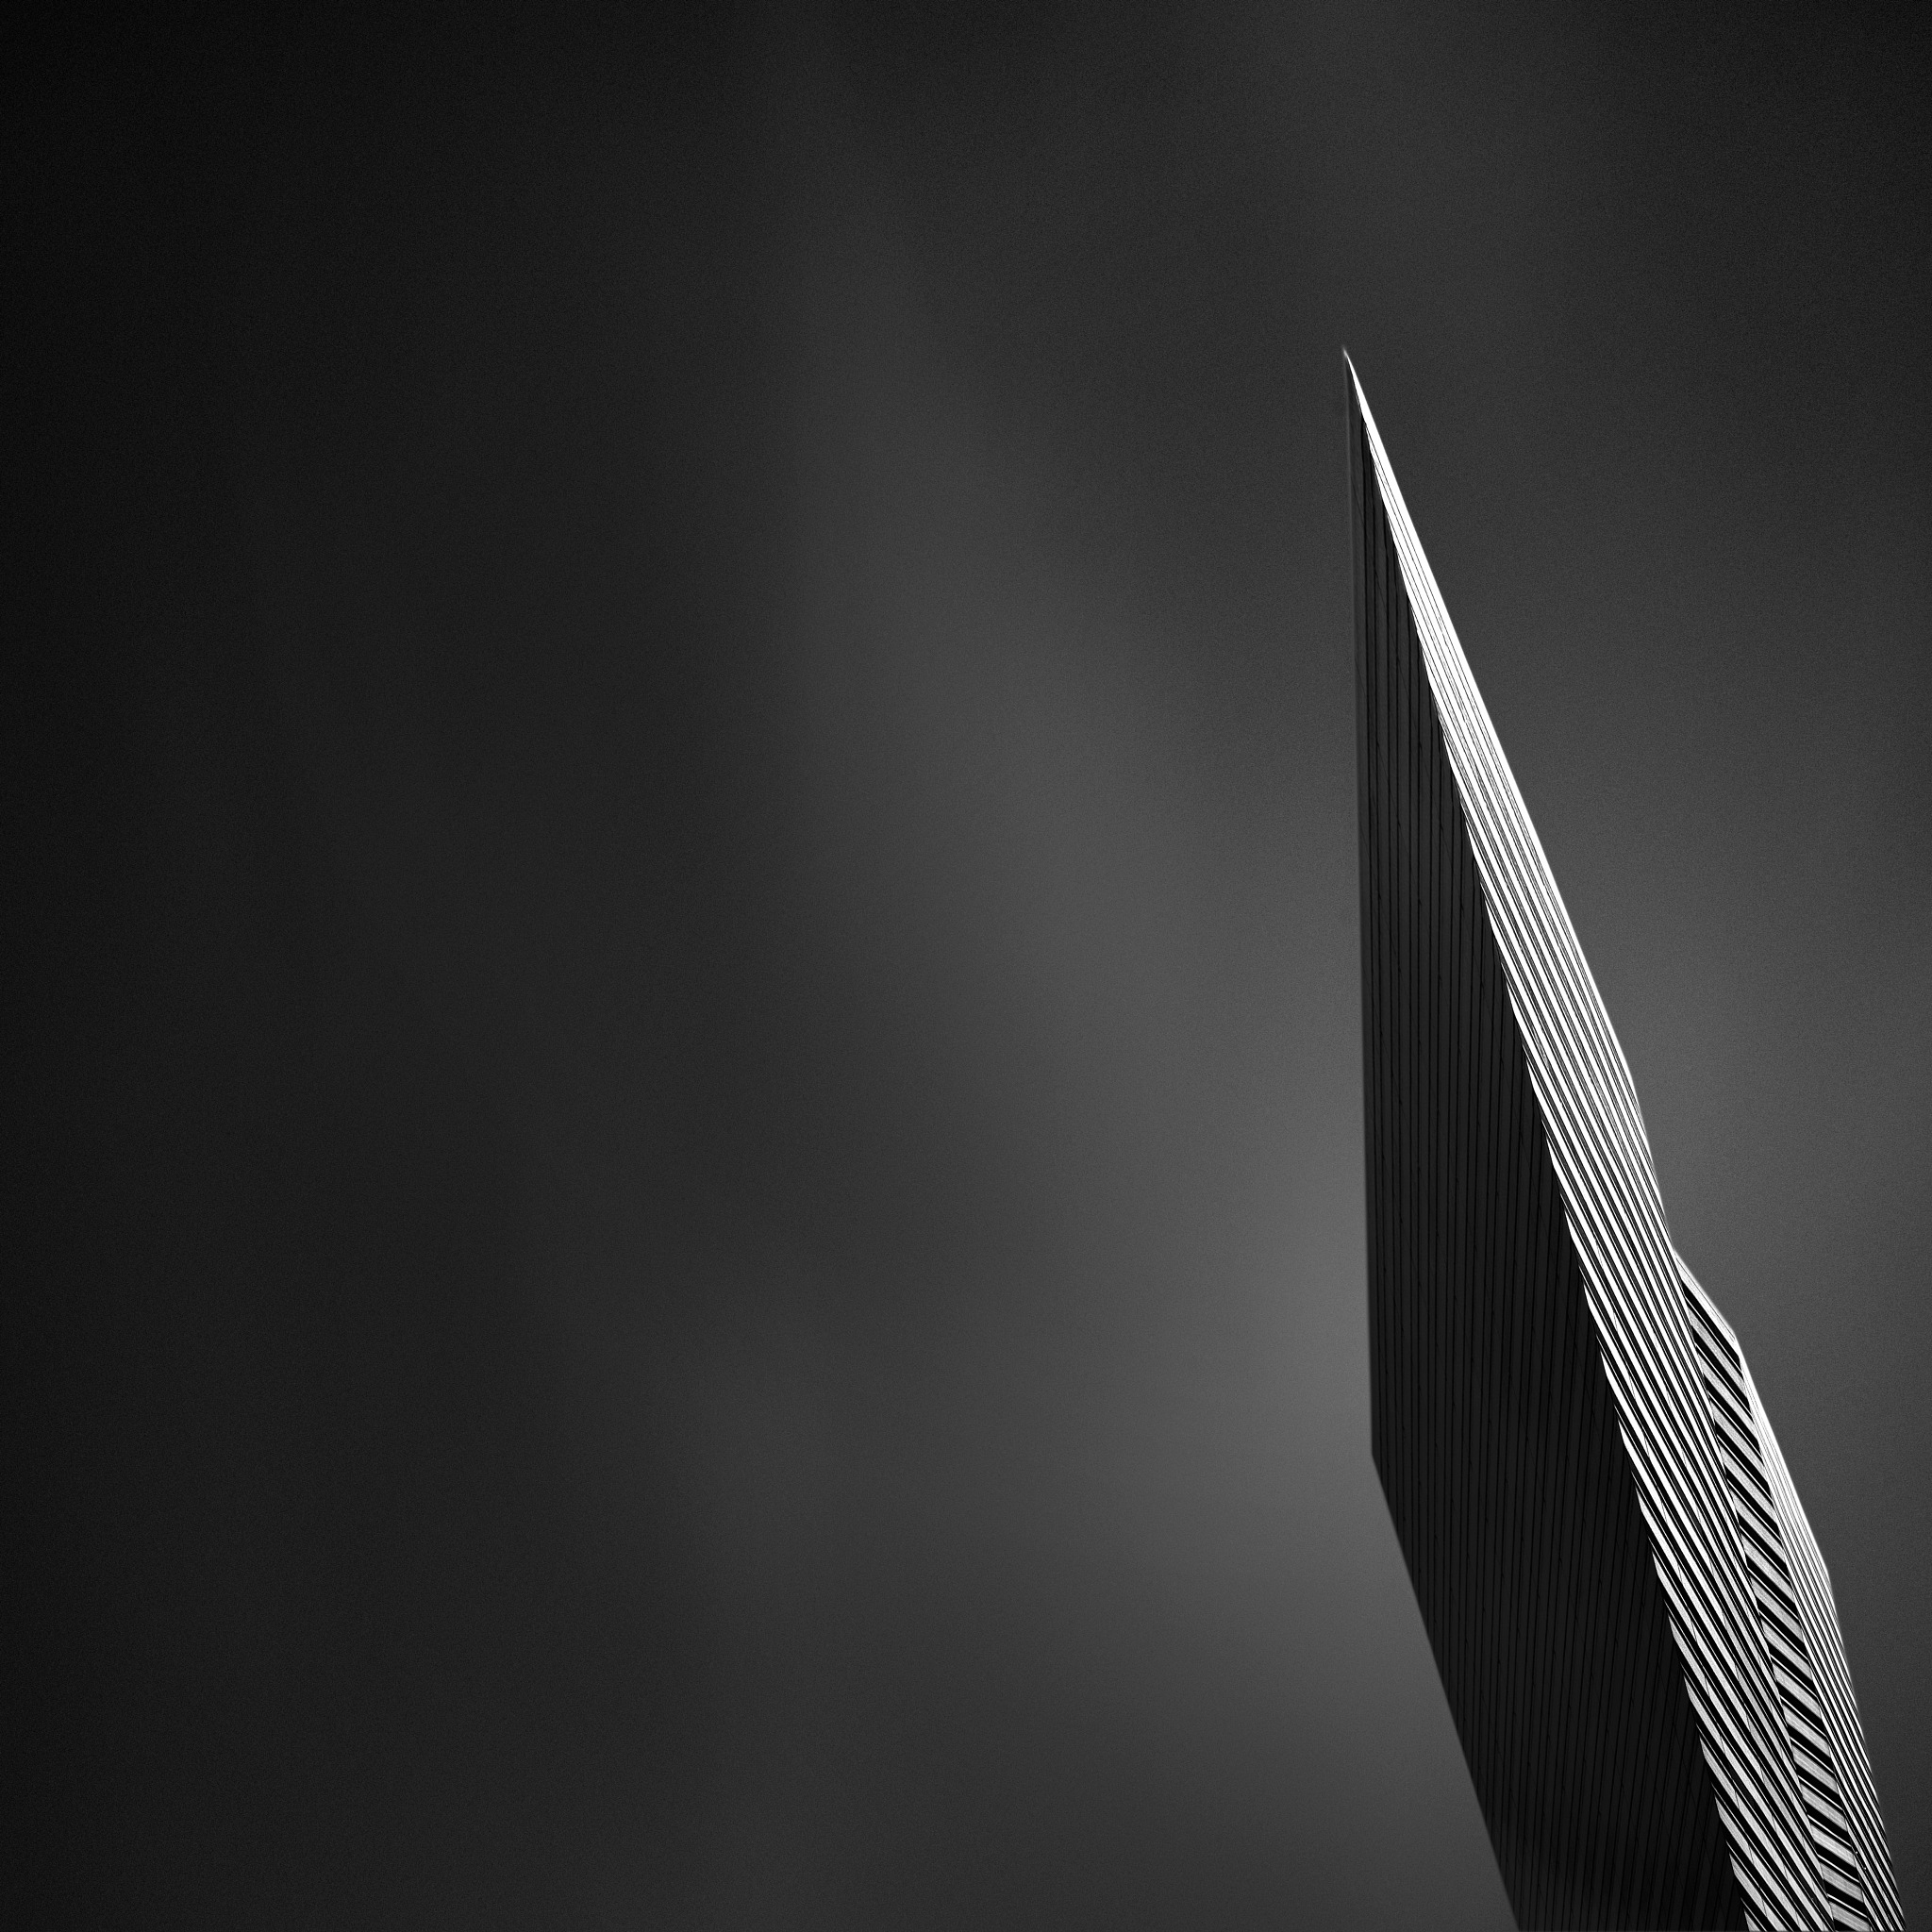 Spear by Ahmed Thabet